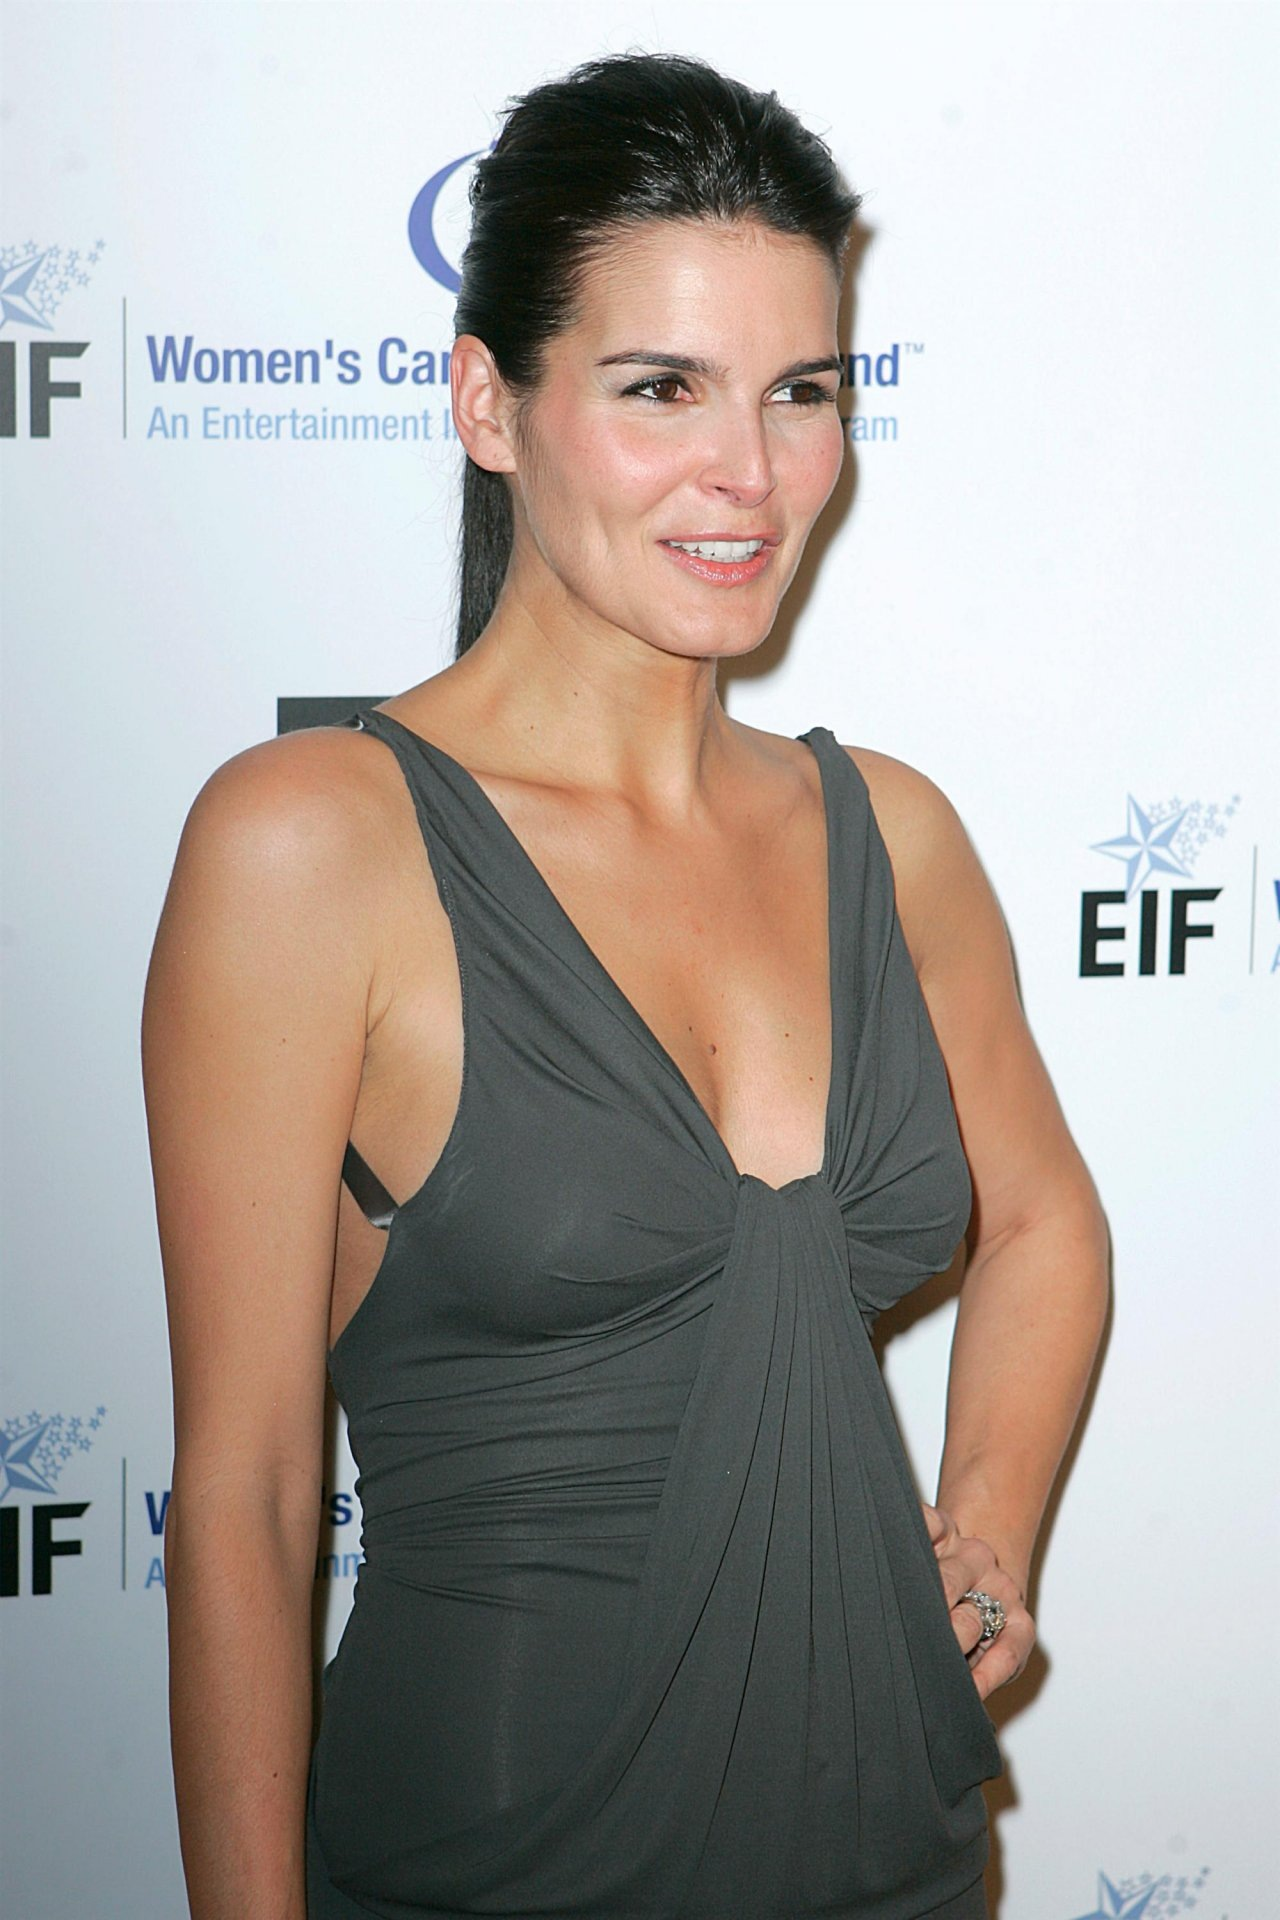 Angie Harmon wallpapers (34186). Best Angie Harmon pictures